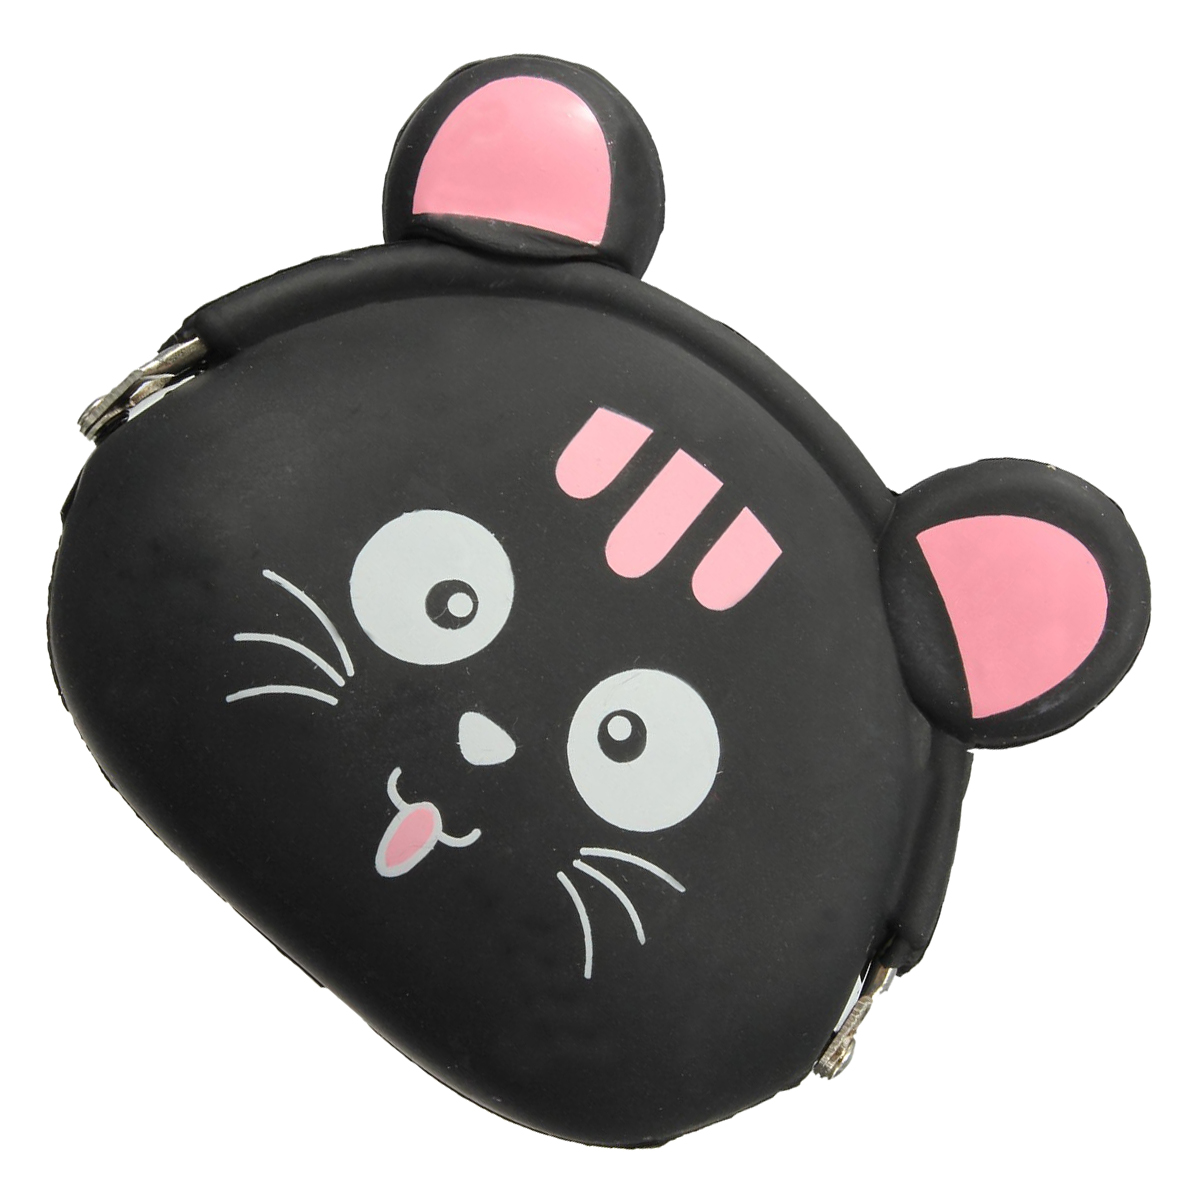 Top Sale BISM-Women Girls Wallet Kawaii Cute Cartoon Animal Silicone Jelly Coin Bag Purse Kids Gift Black cat fggs women girls wallet kawaii cute cartoon animal silicone jelly coin bag purse kids gift small cat